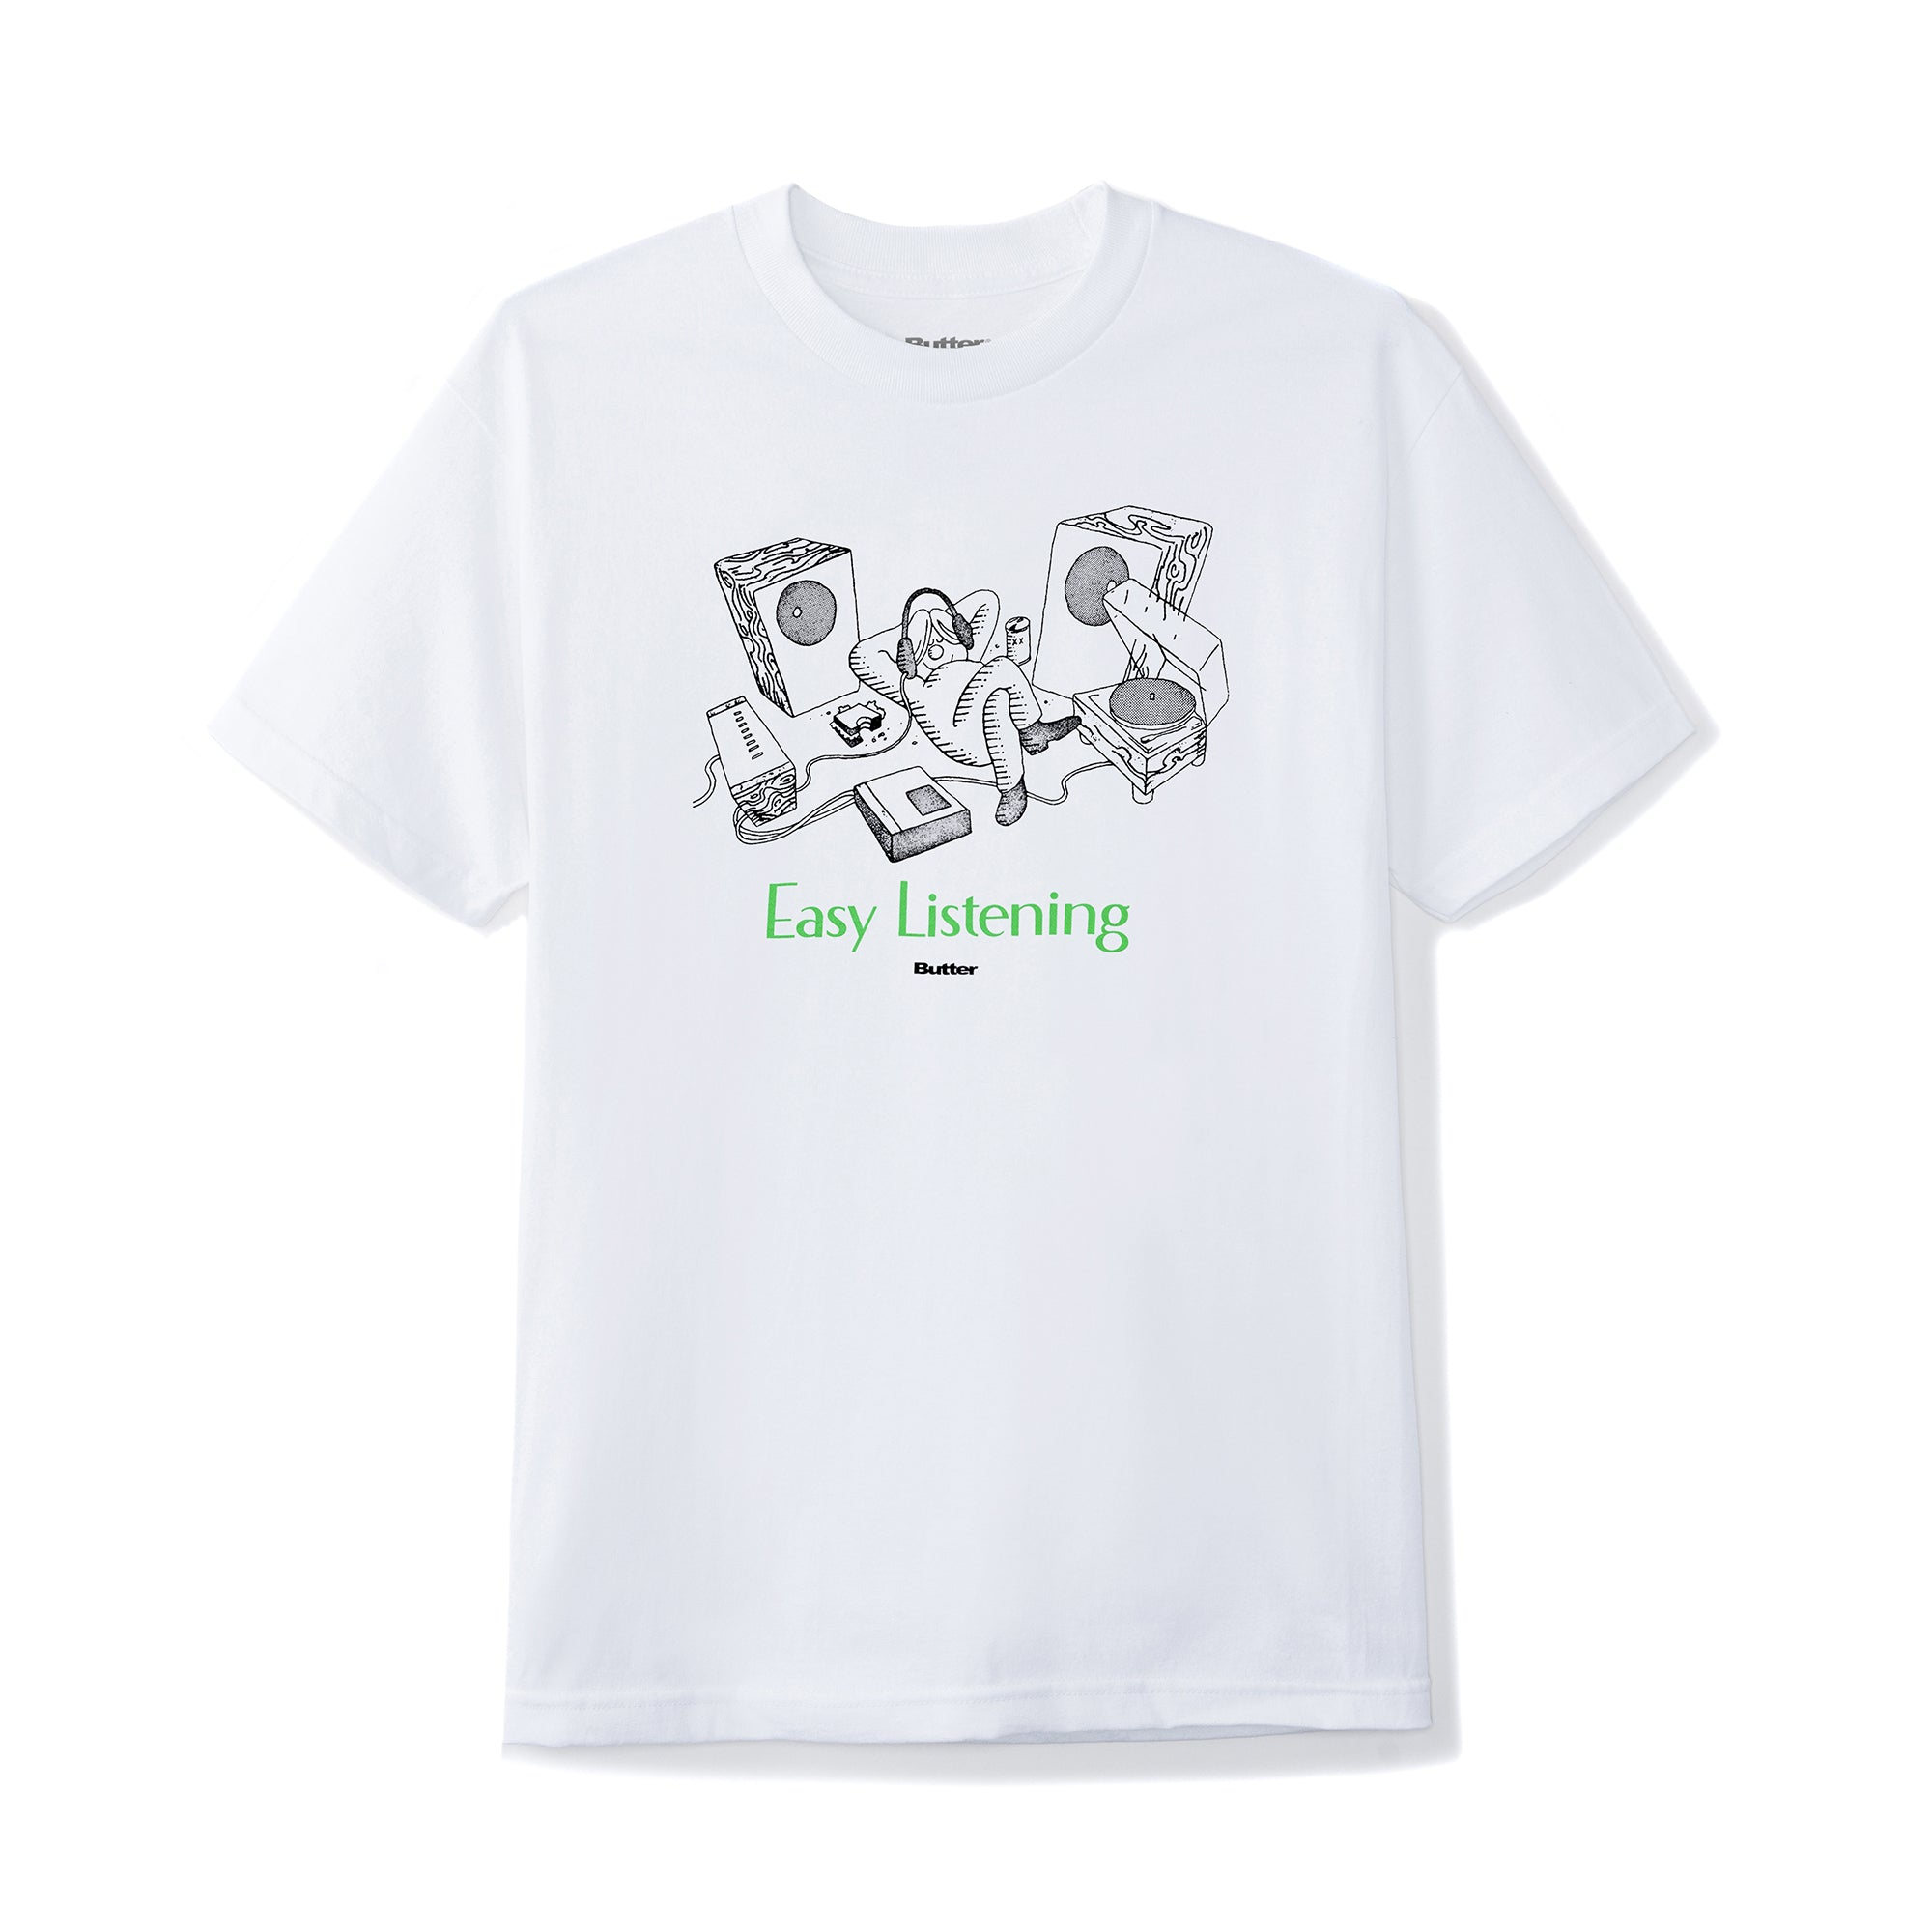 Butter Goods Easy Listening Tee Product Photo #1